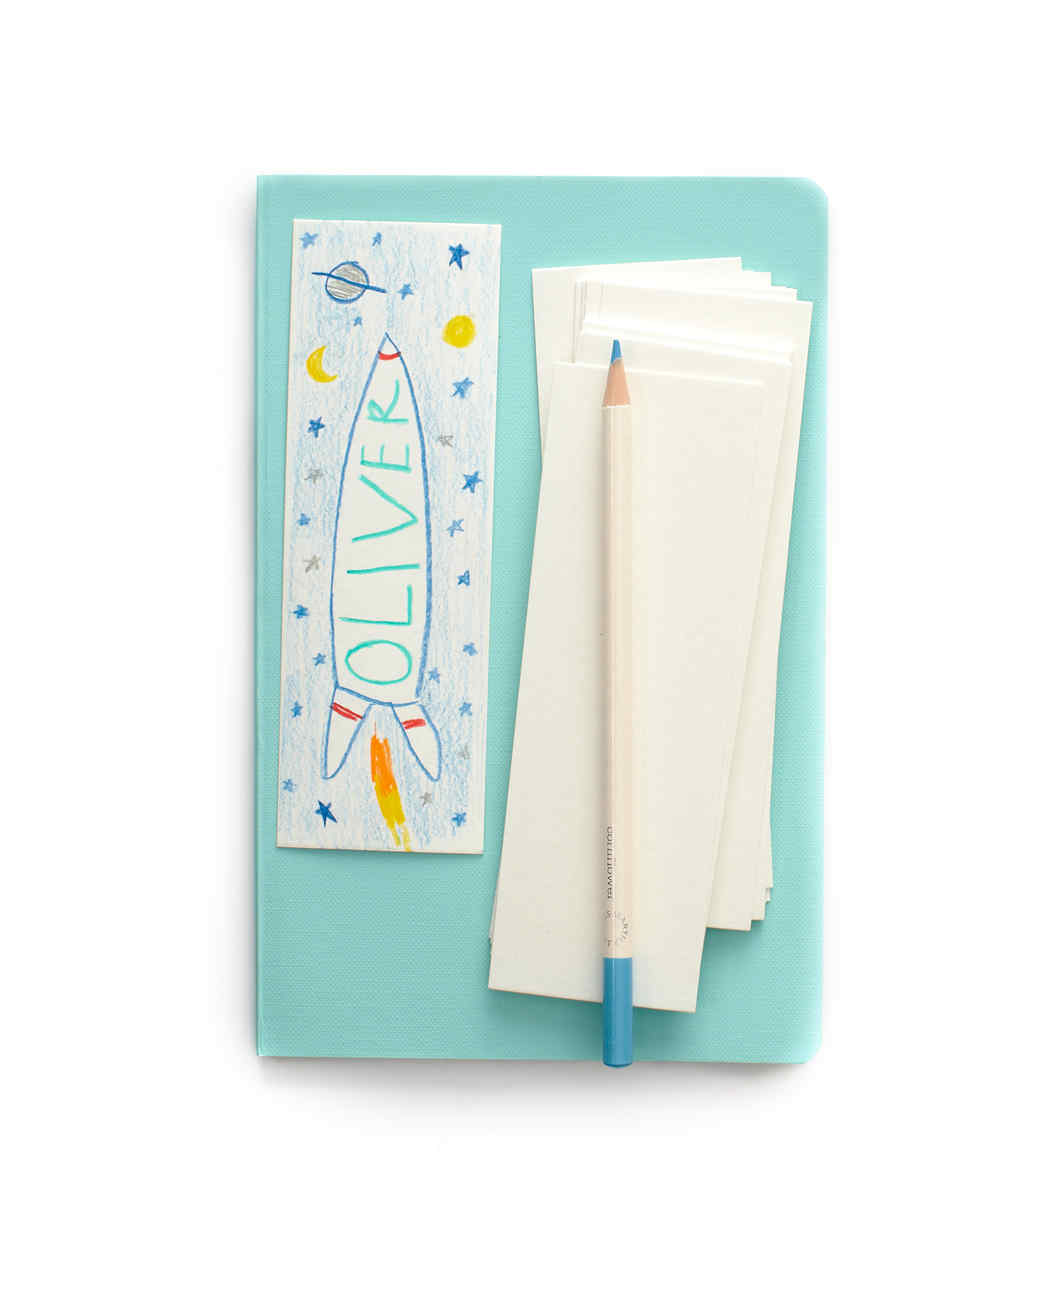 camp-care-package-bookmarks-wld108705.jpg